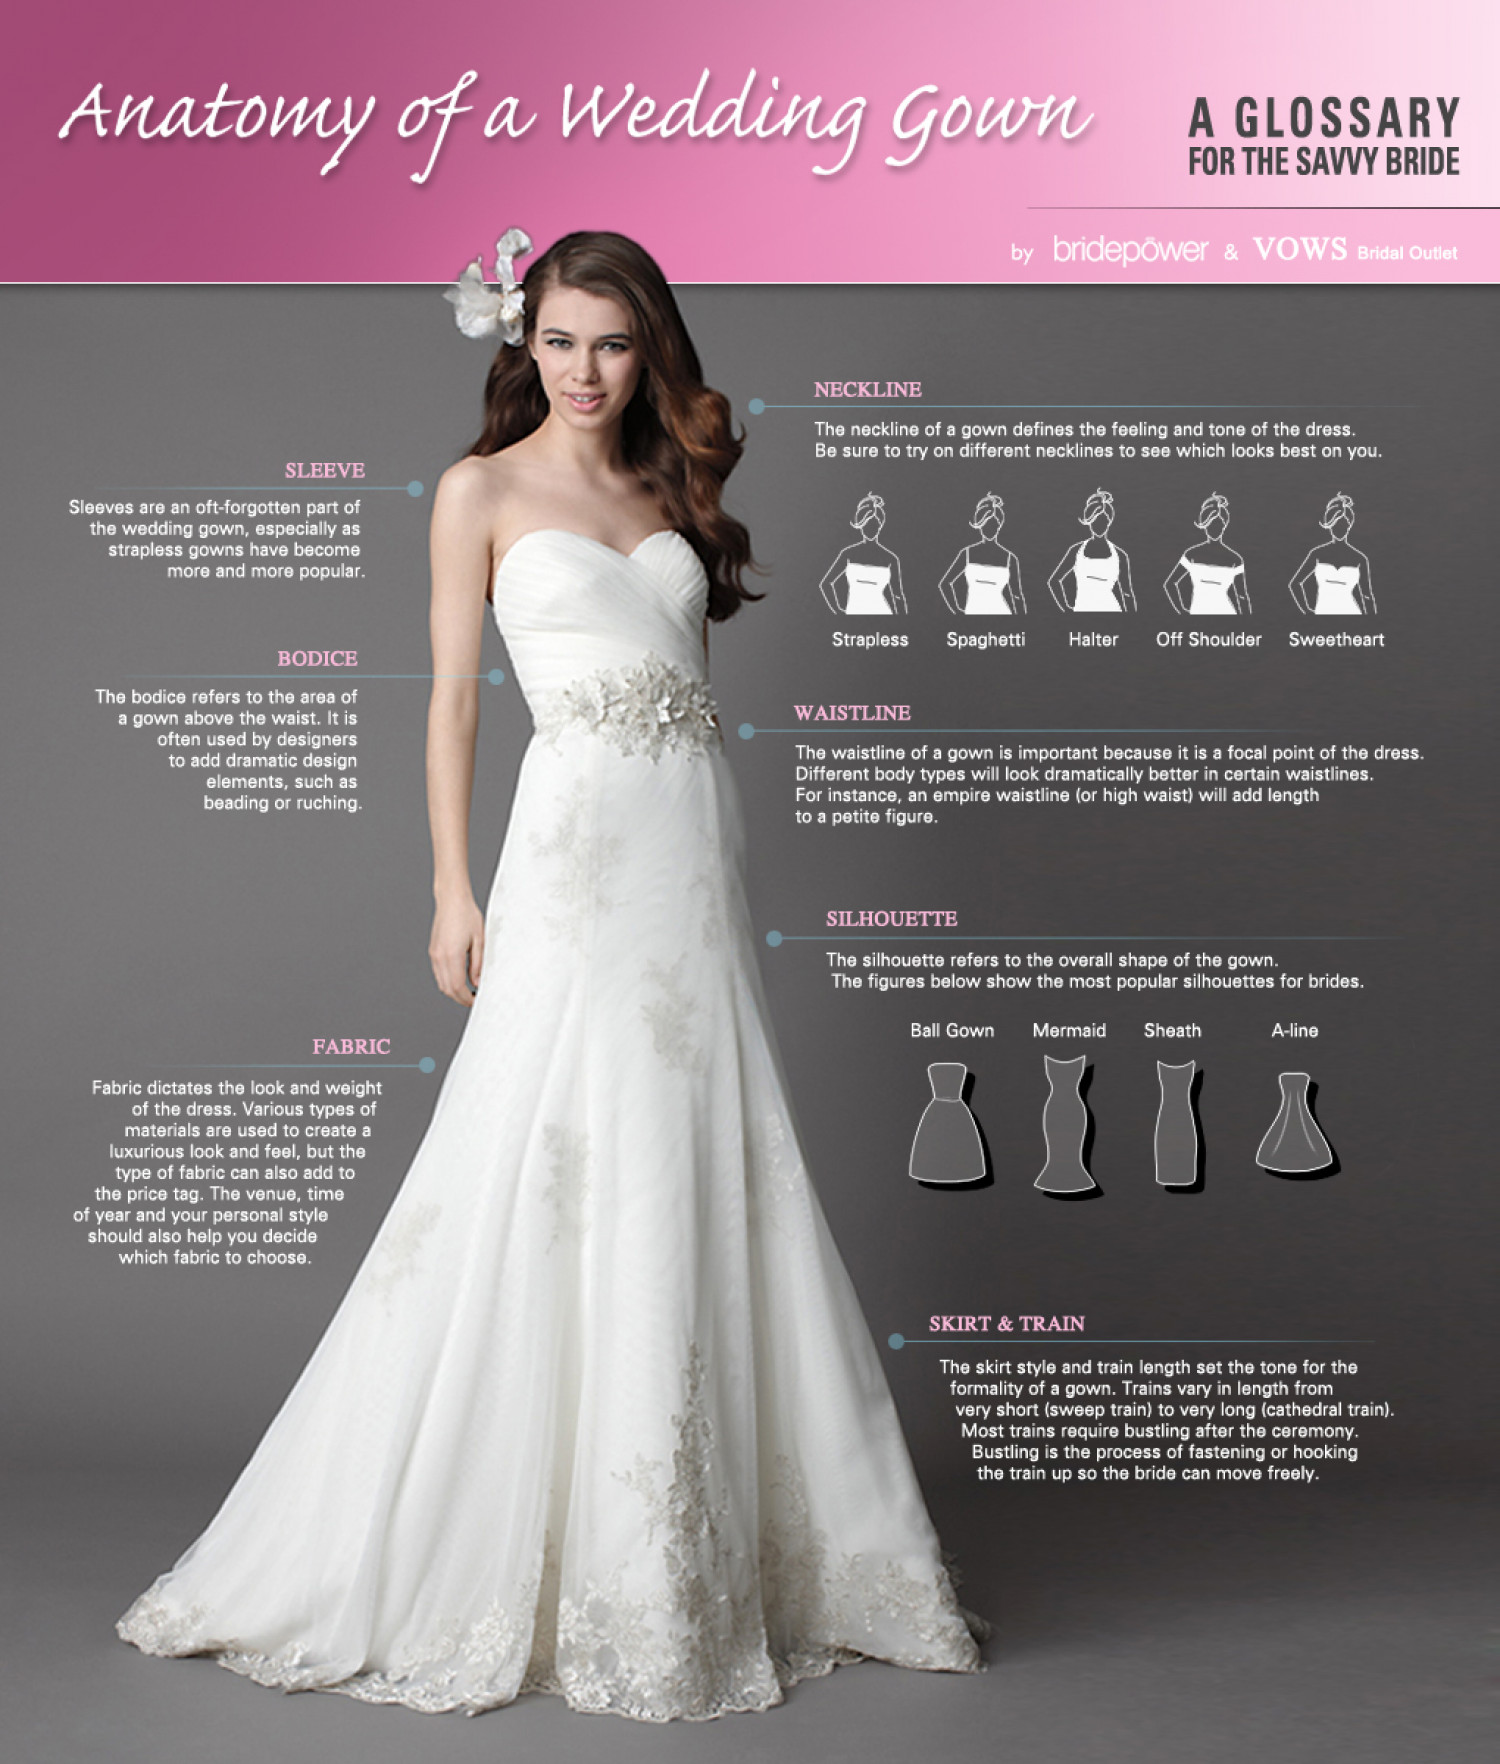 Anatomy of a Wedding Gown | Visual.ly